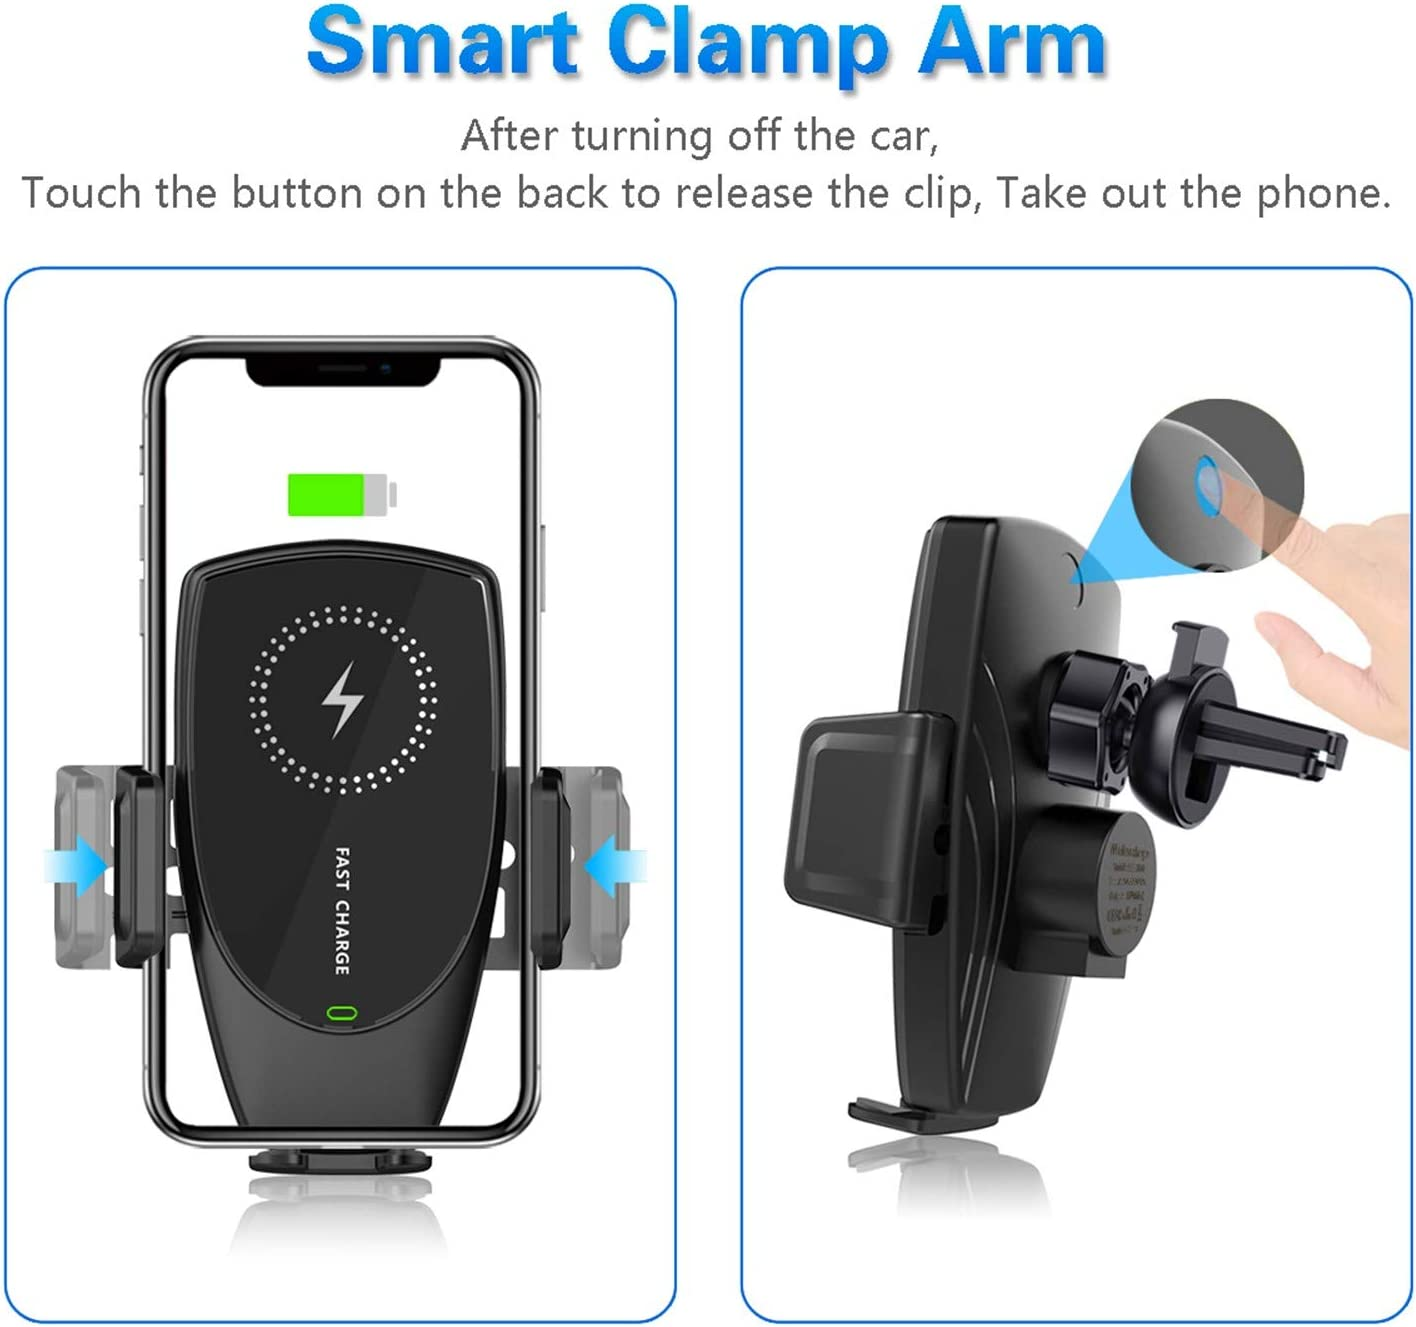 Car Charger Holder 10W Fast Charging for iPhone Xs Max//XR//X//8//8Plus Samsung S10//S9//S8//Note 8-Silver KMI CHOU E5 Car Accessory,Automatic Clamping IR Intelligent Wireless Car Charger